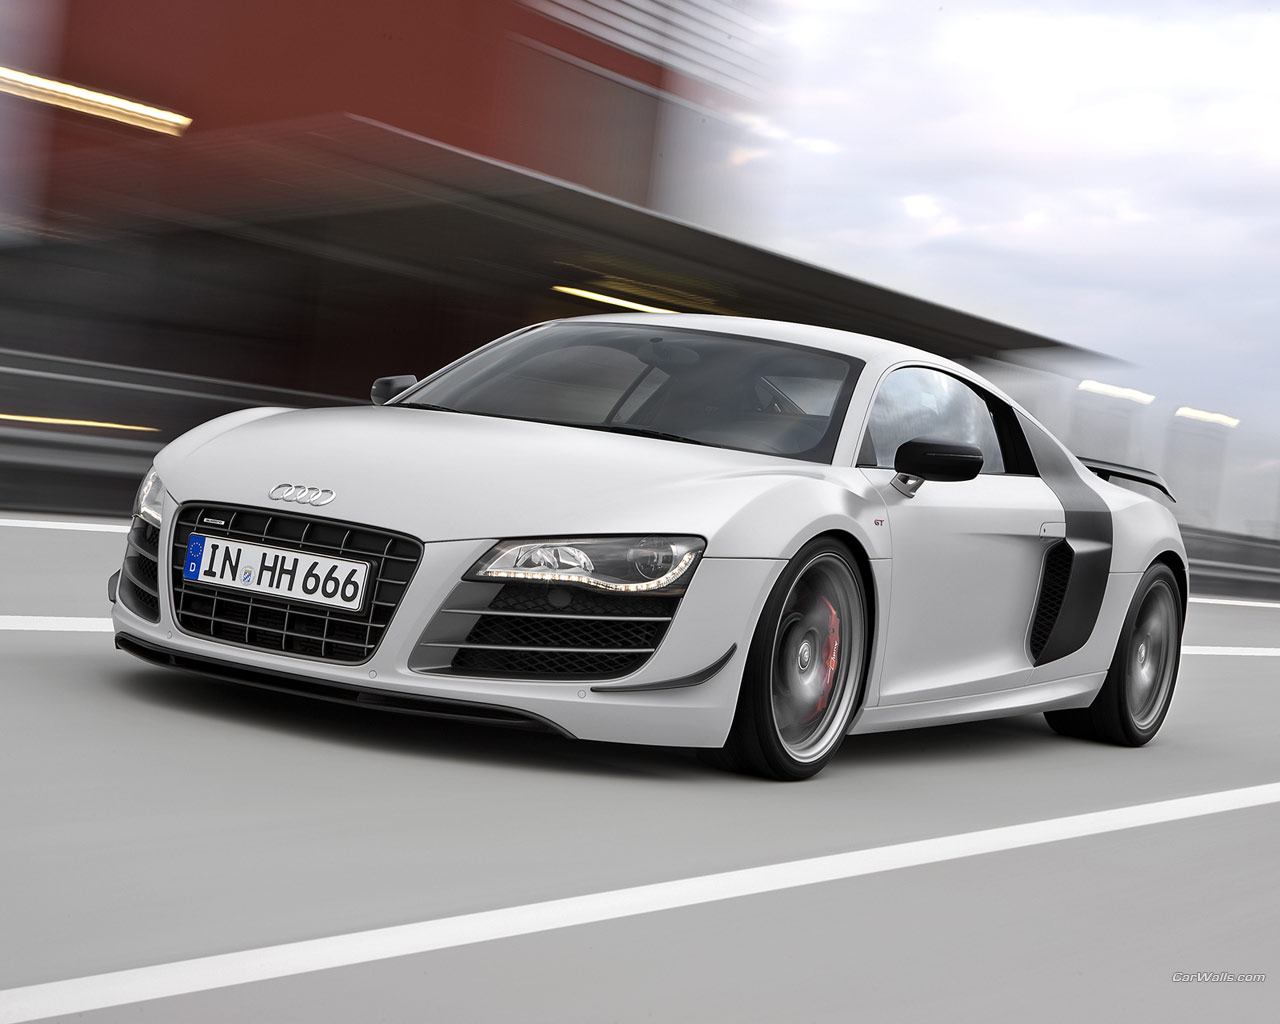 audi r8 car desktop wallpapers audi r8 car desktop wallpapers audi r8 1280x1024